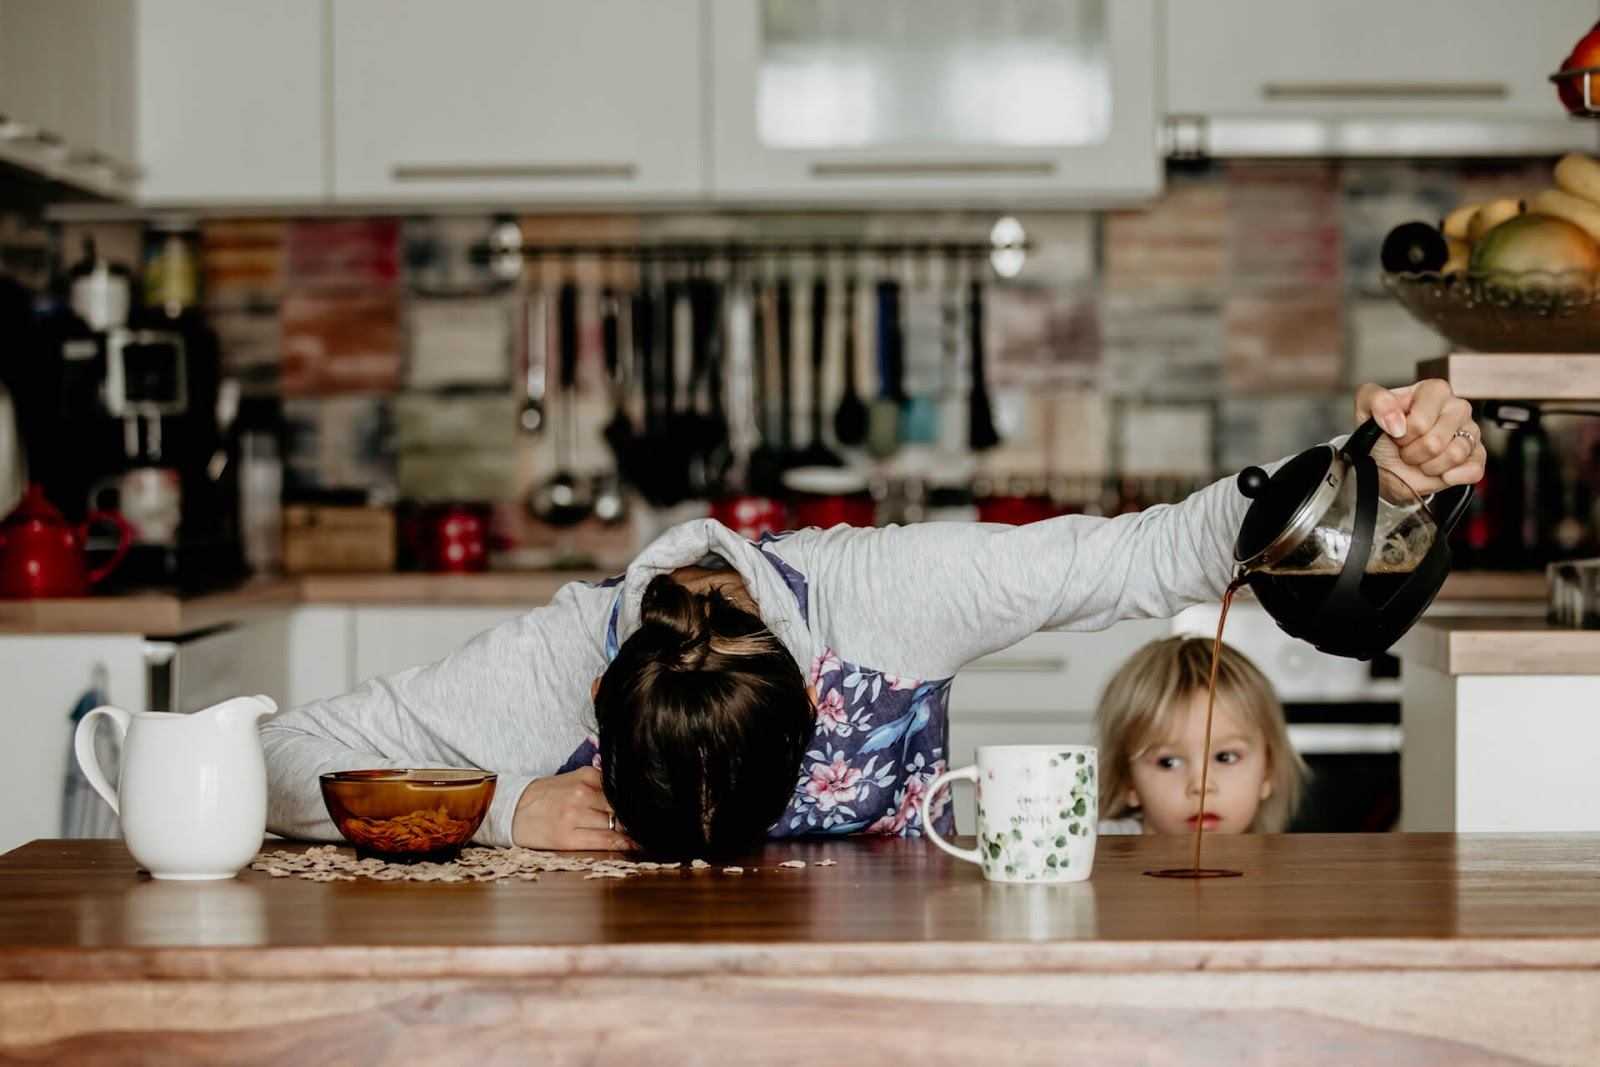 Tired mom pouring coffee on the counter as she misses her cup